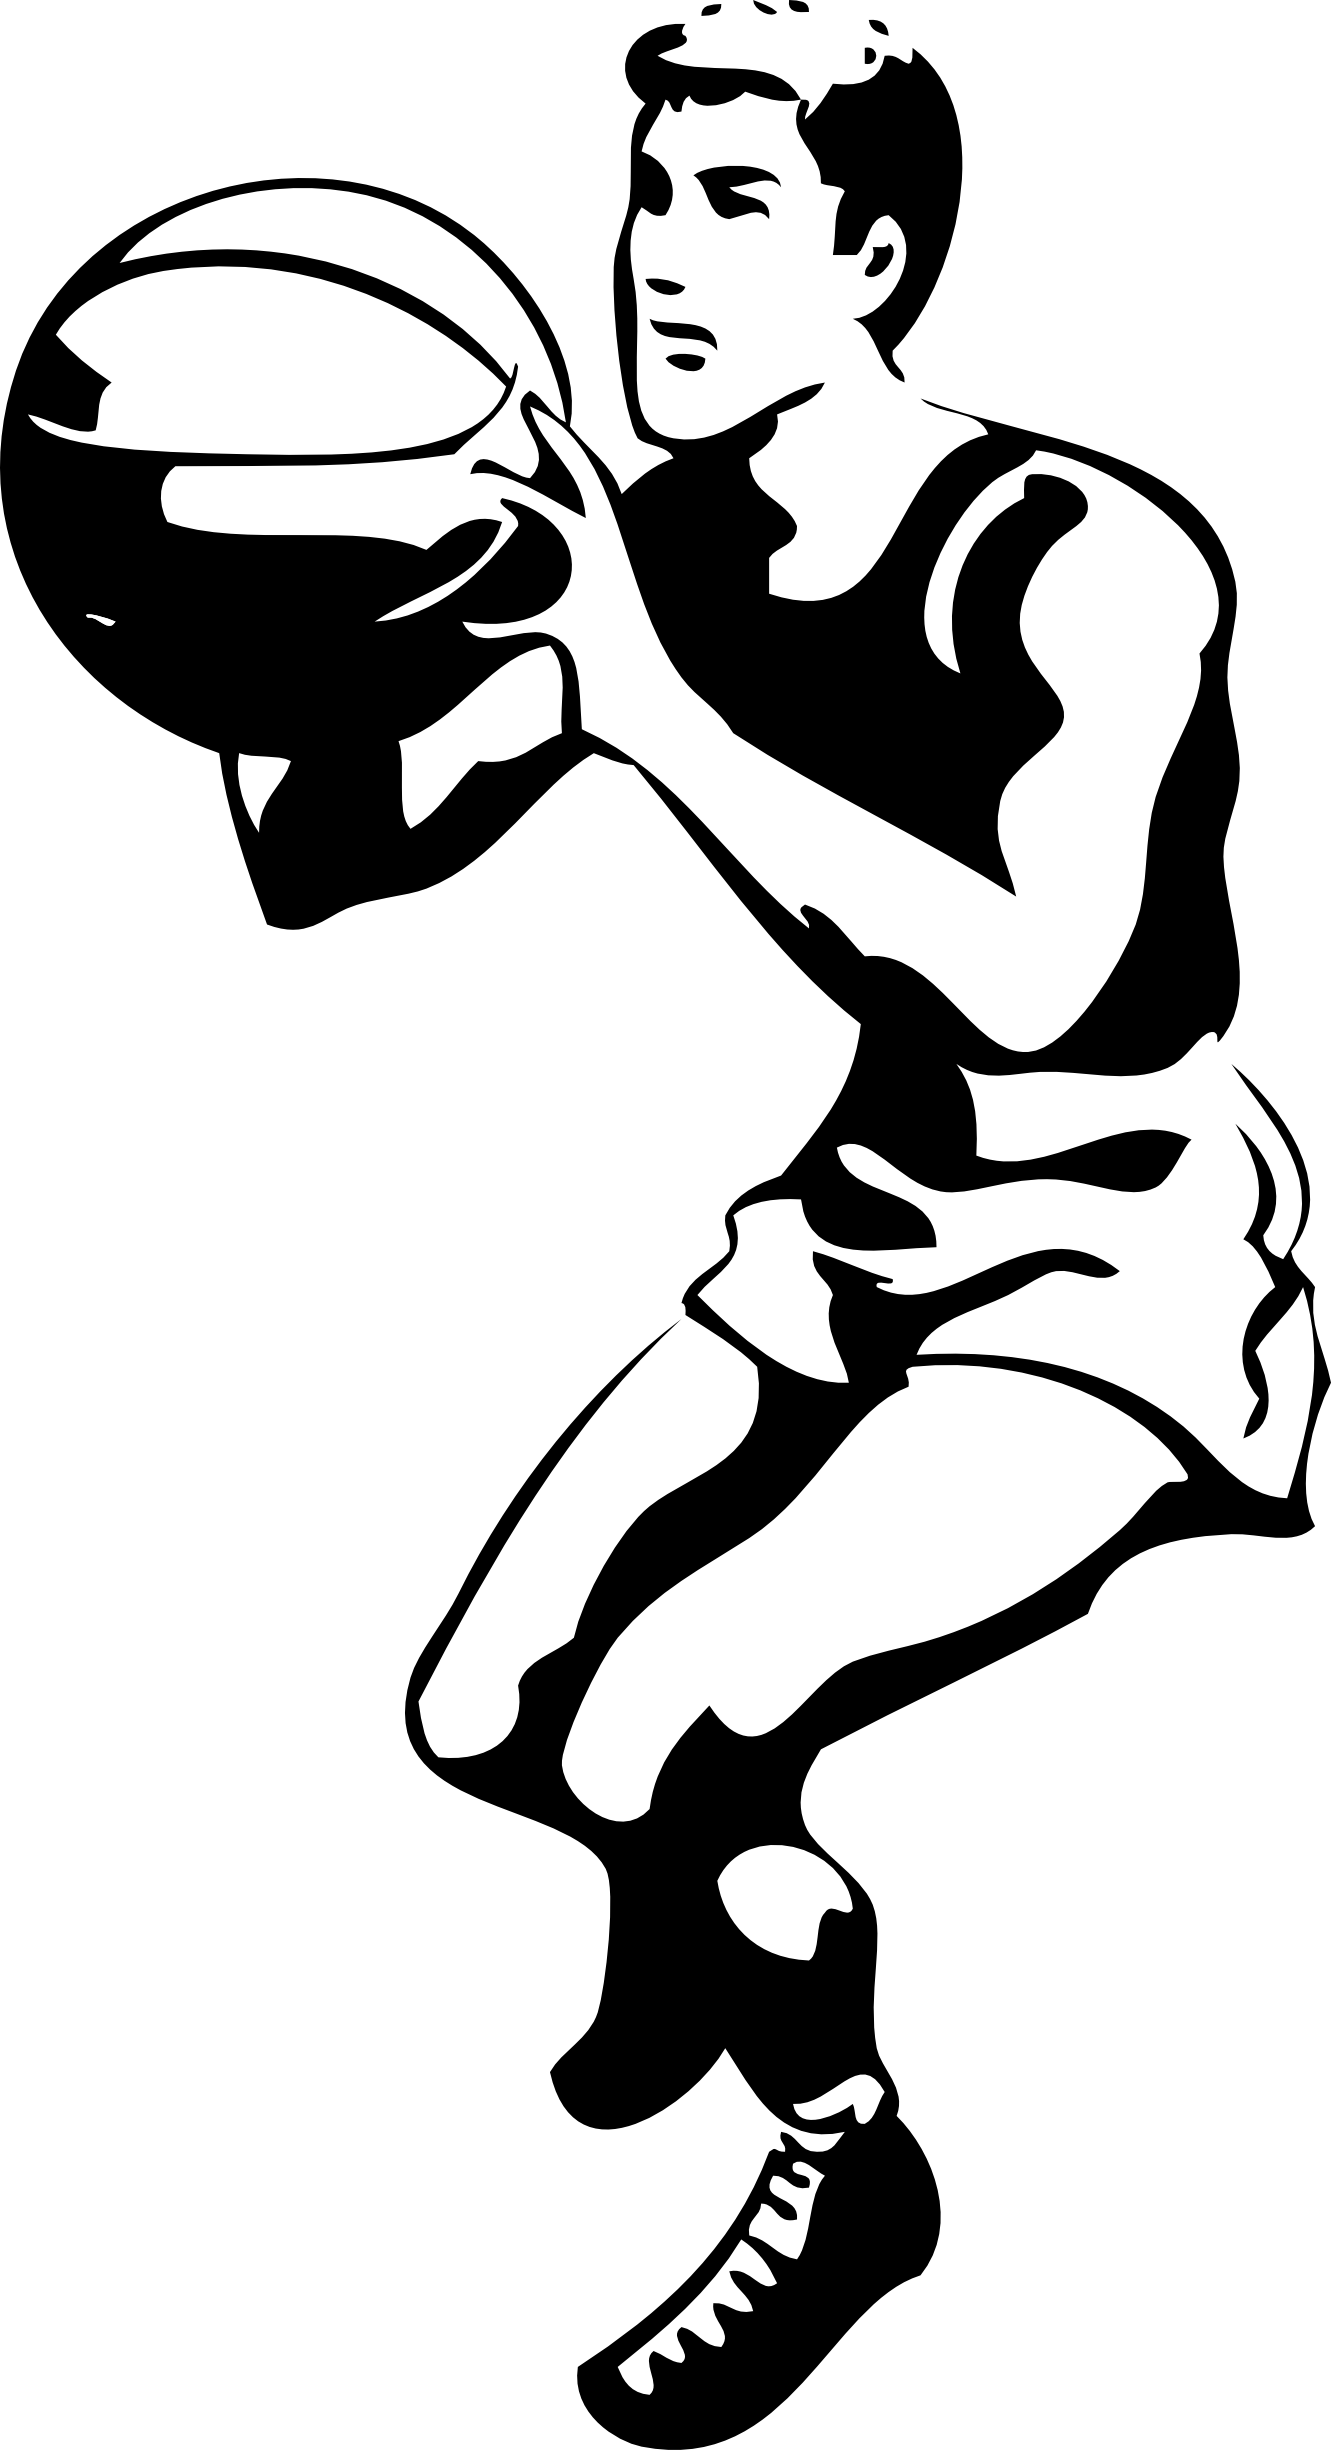 Jpeg basketball clipart black and white picture free Basketball Player Clipart Black And White | Clipart Panda - Free ... picture free